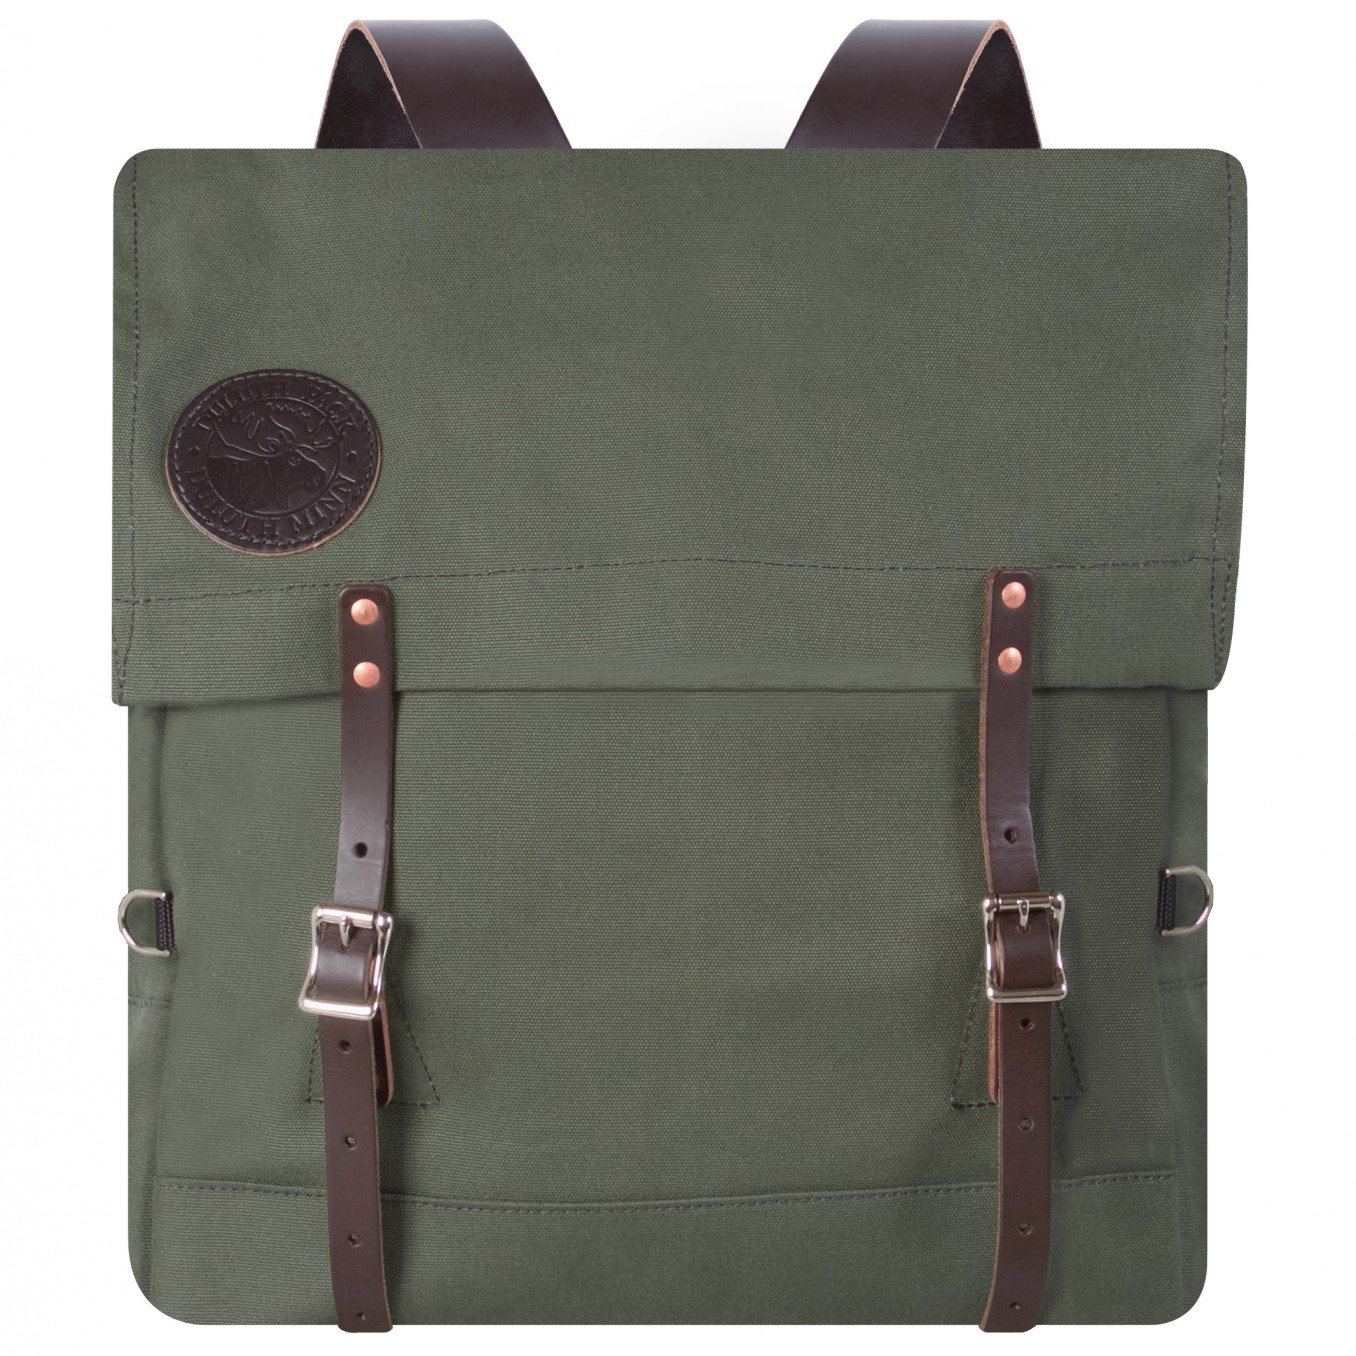 - A Duluth Pack